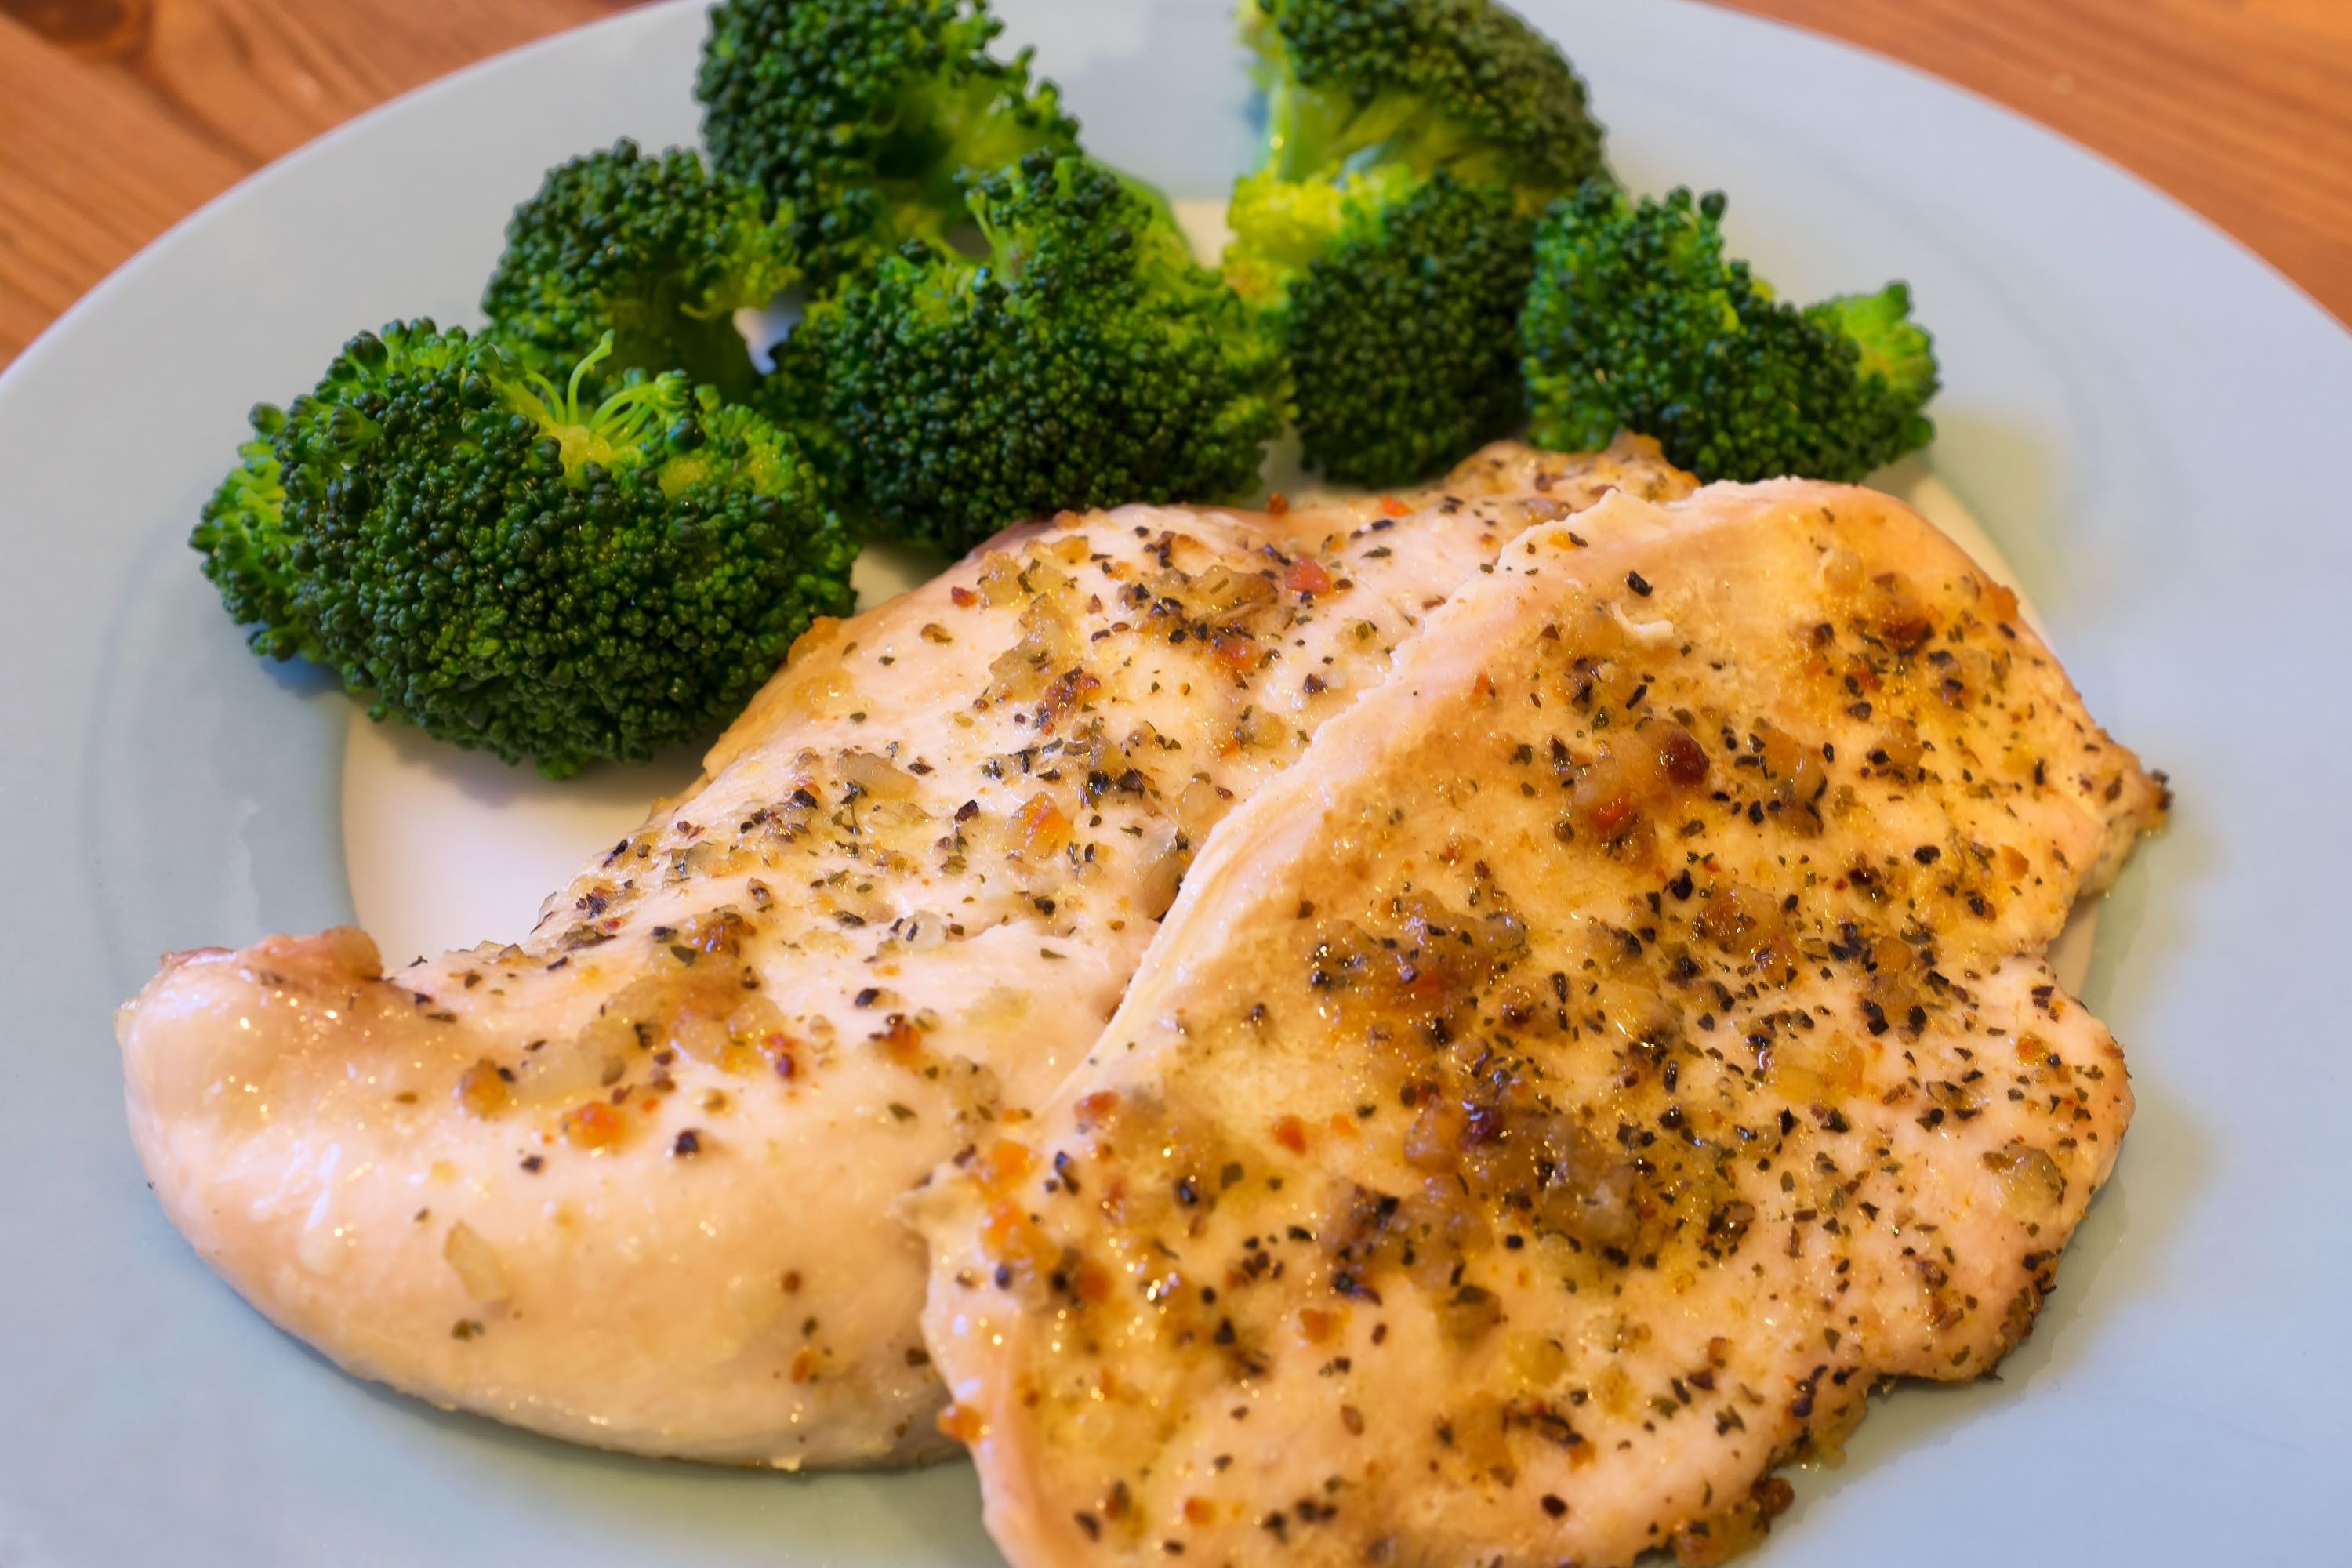 How to Bake Boneless Skinless Chicken Breasts in the Oven and Keep Them Tender